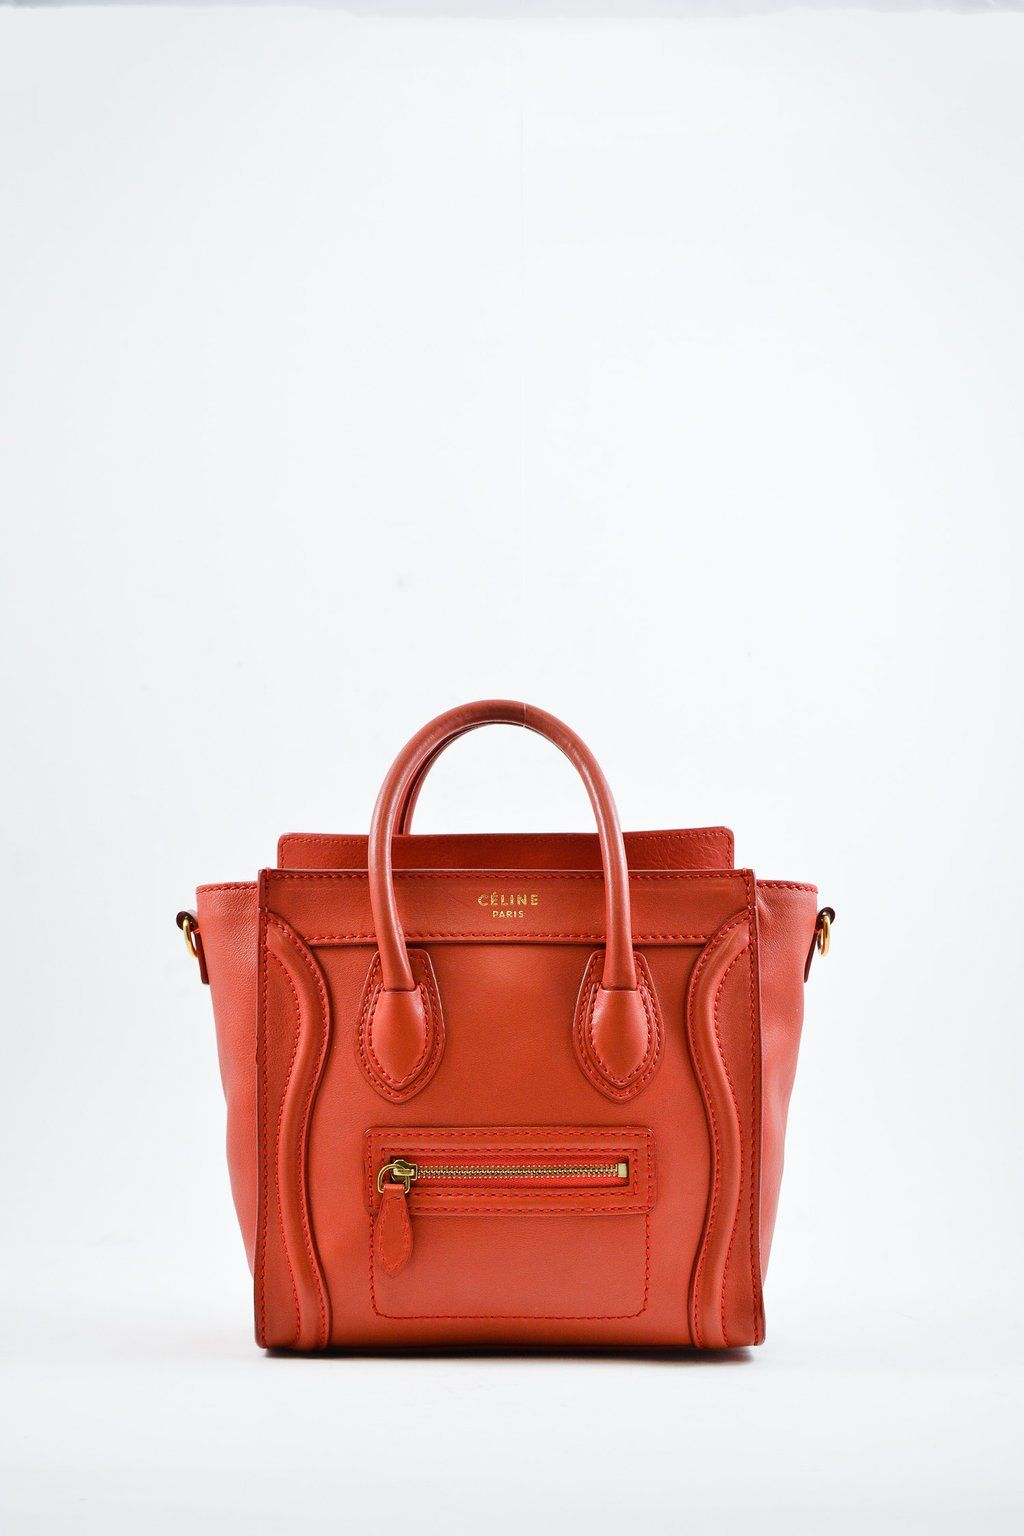 b3da6ee36365 Celine Red Nano Luggage Crossbody Bag  MineAndYours